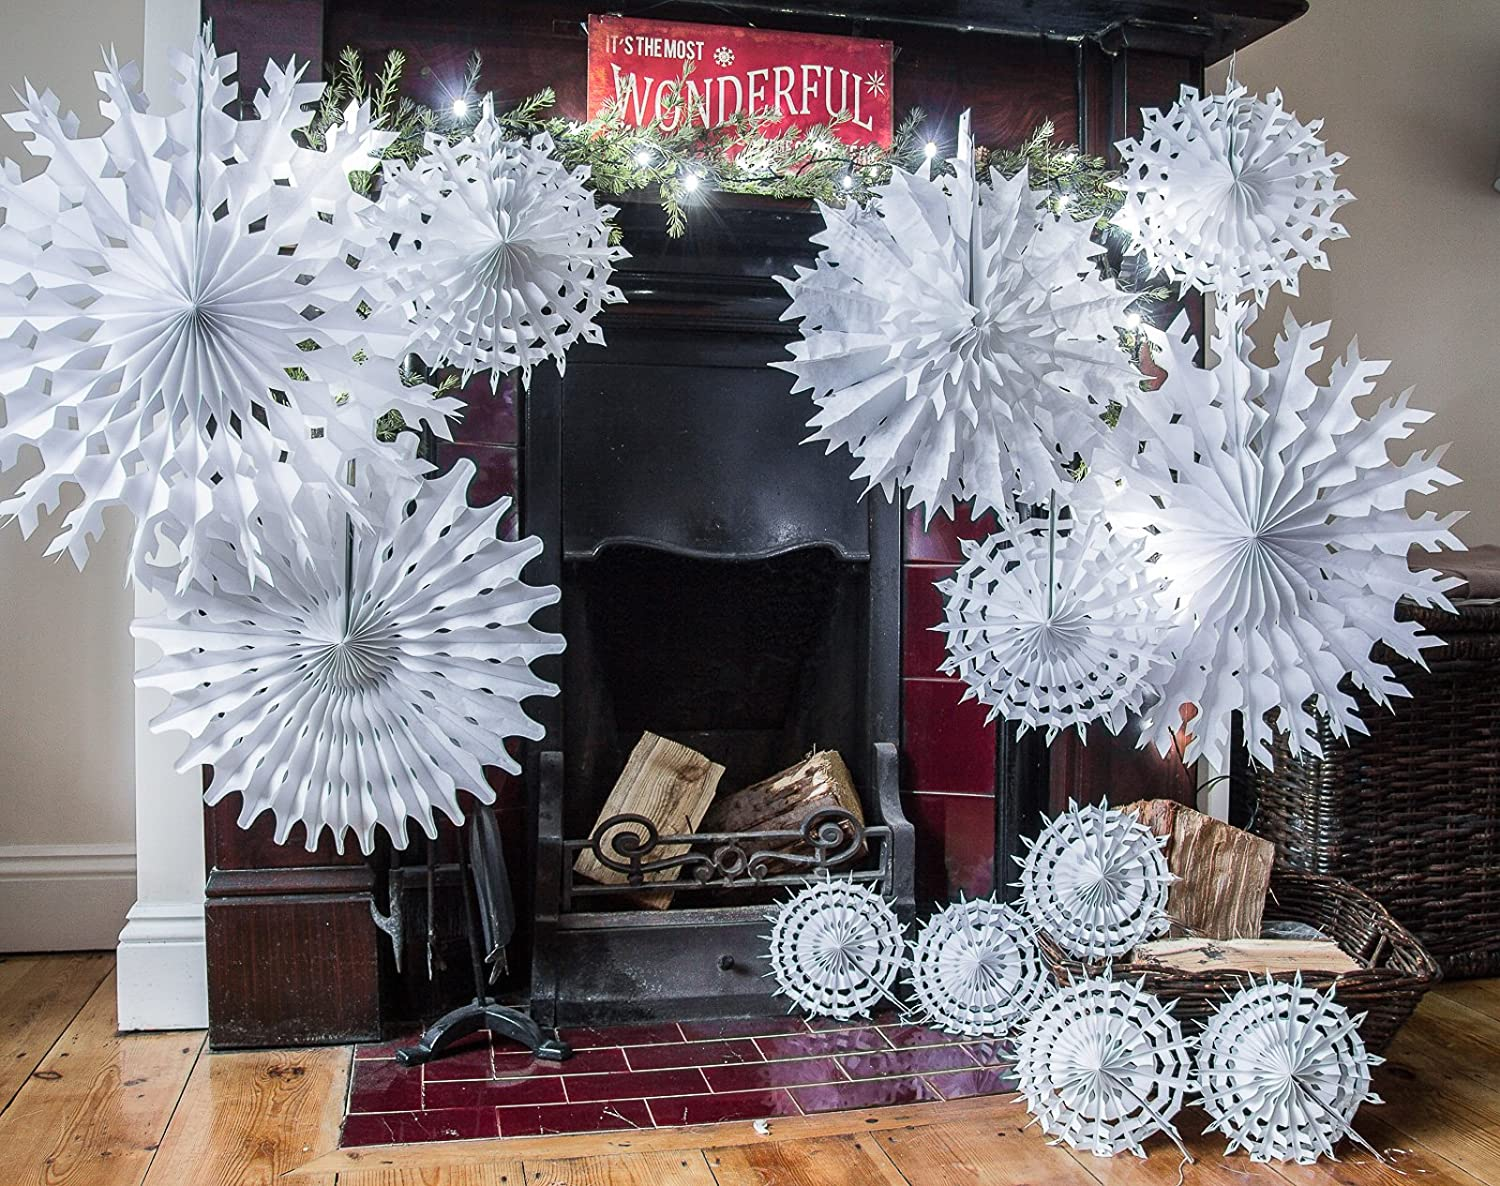 snowflakes cheap get shopping white decorations ornaments supplies snowflake quotations outdoor guides decor find counts winter party bilipala